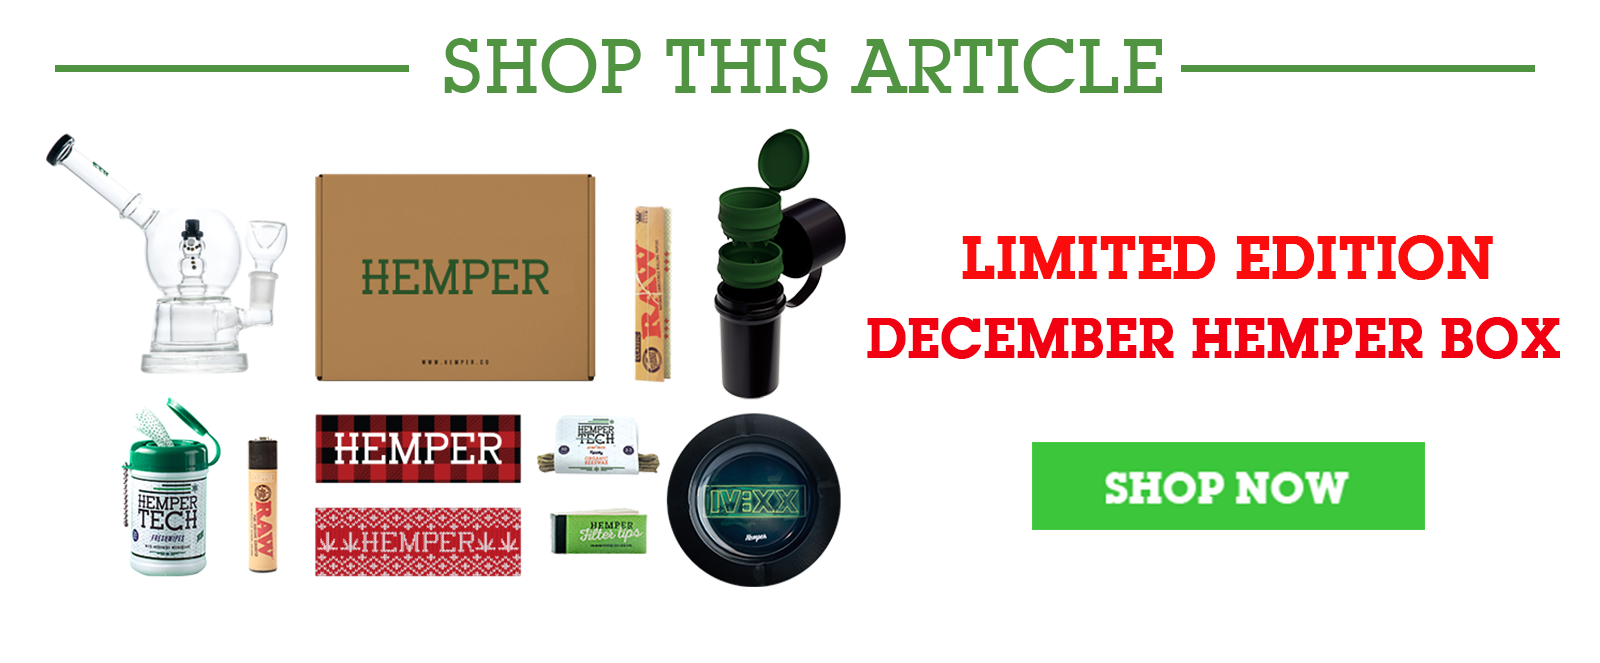 December HEMPER box Shop Now